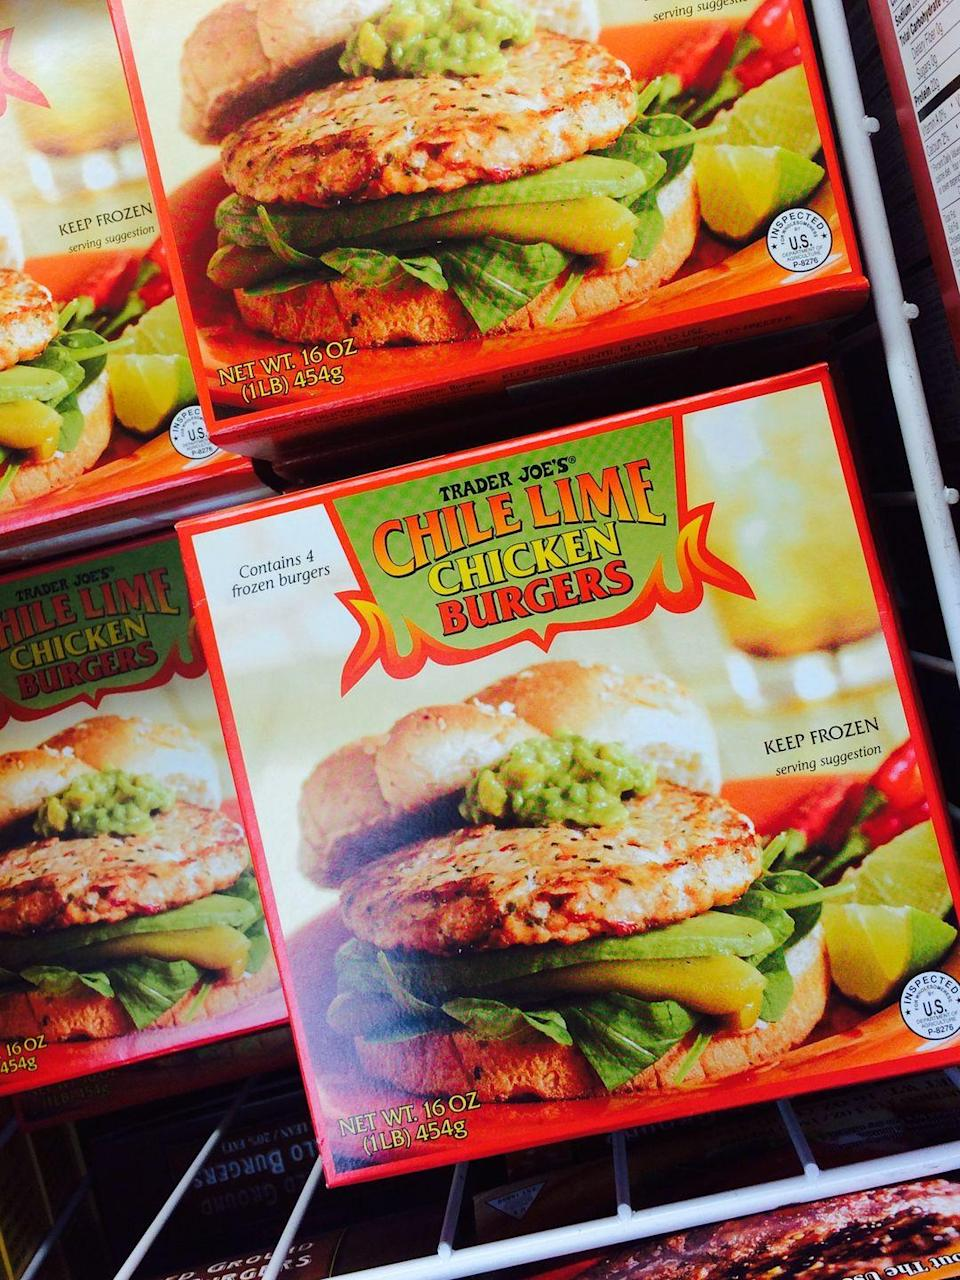 <p>All products in the stores that have Trader Joe's label are free of preservatives, so you'll want to eat their fresh foods quickly. They also have no artificial flavors, no genetically modified ingredients, no artificial trans-fats and no MSG so you can feel good about eating their foods and feeding them to your family.</p>